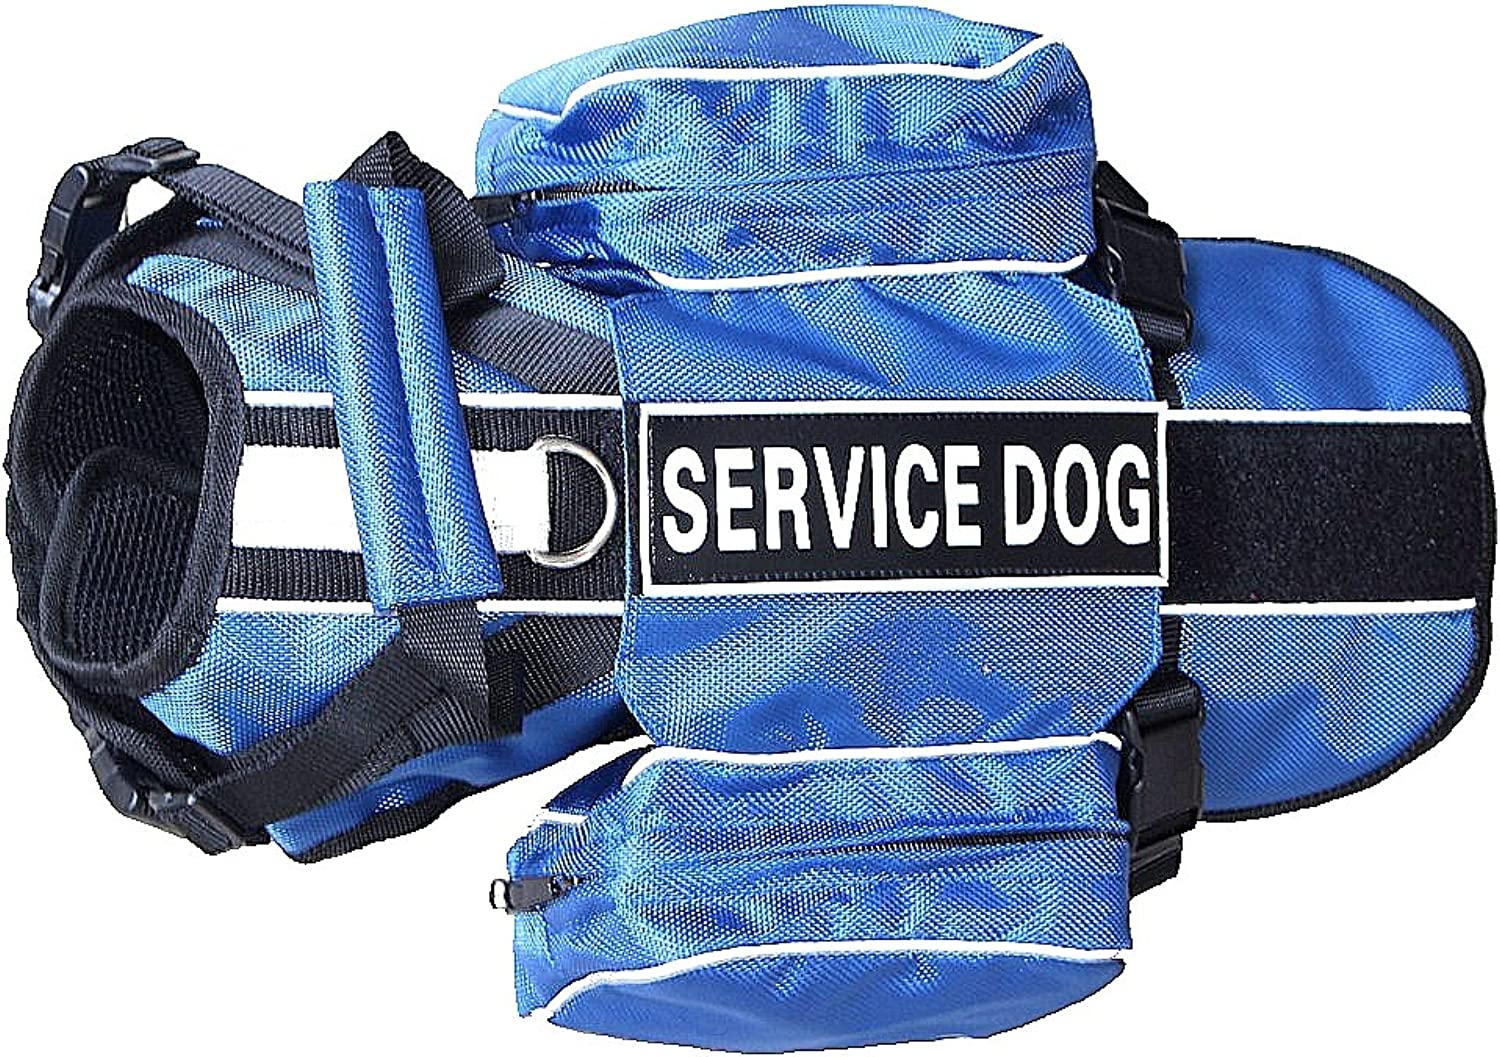 Haoyueer Service Dog Backpack Harness Vest Removable Saddle Bags with Label Patches(bluee,S)